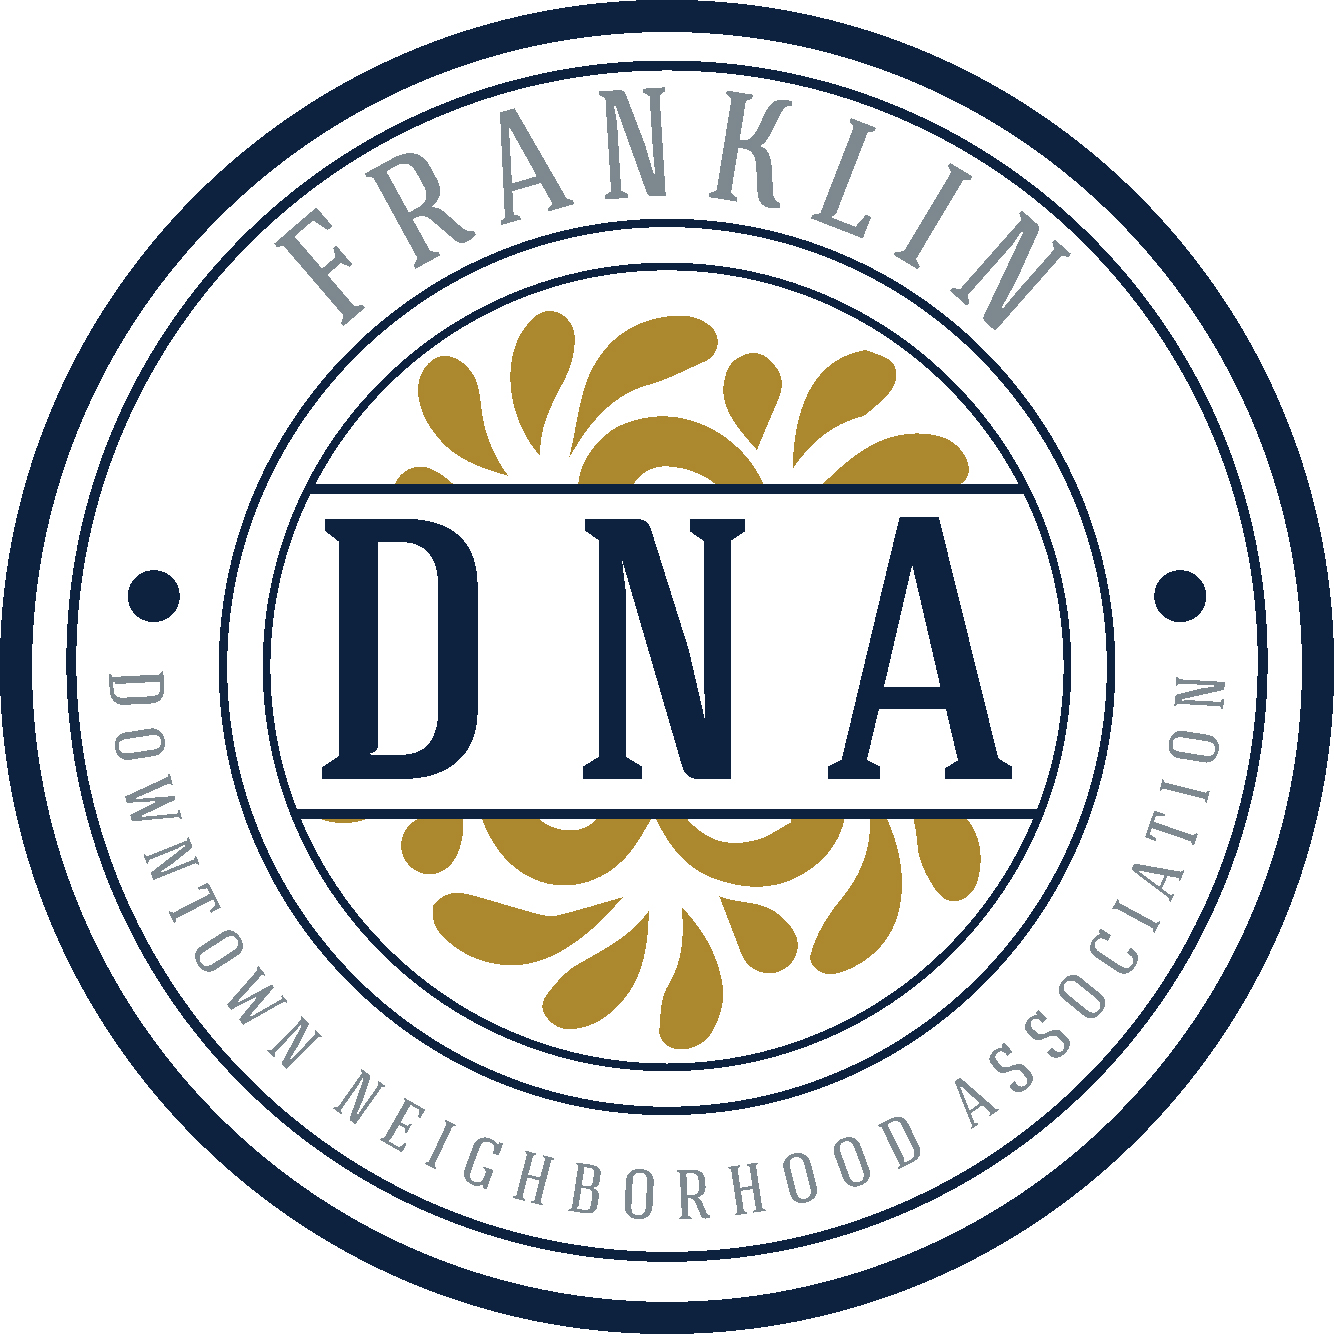 - BECOME A MEMBER OF THE FRANKLIN DNA TODAY